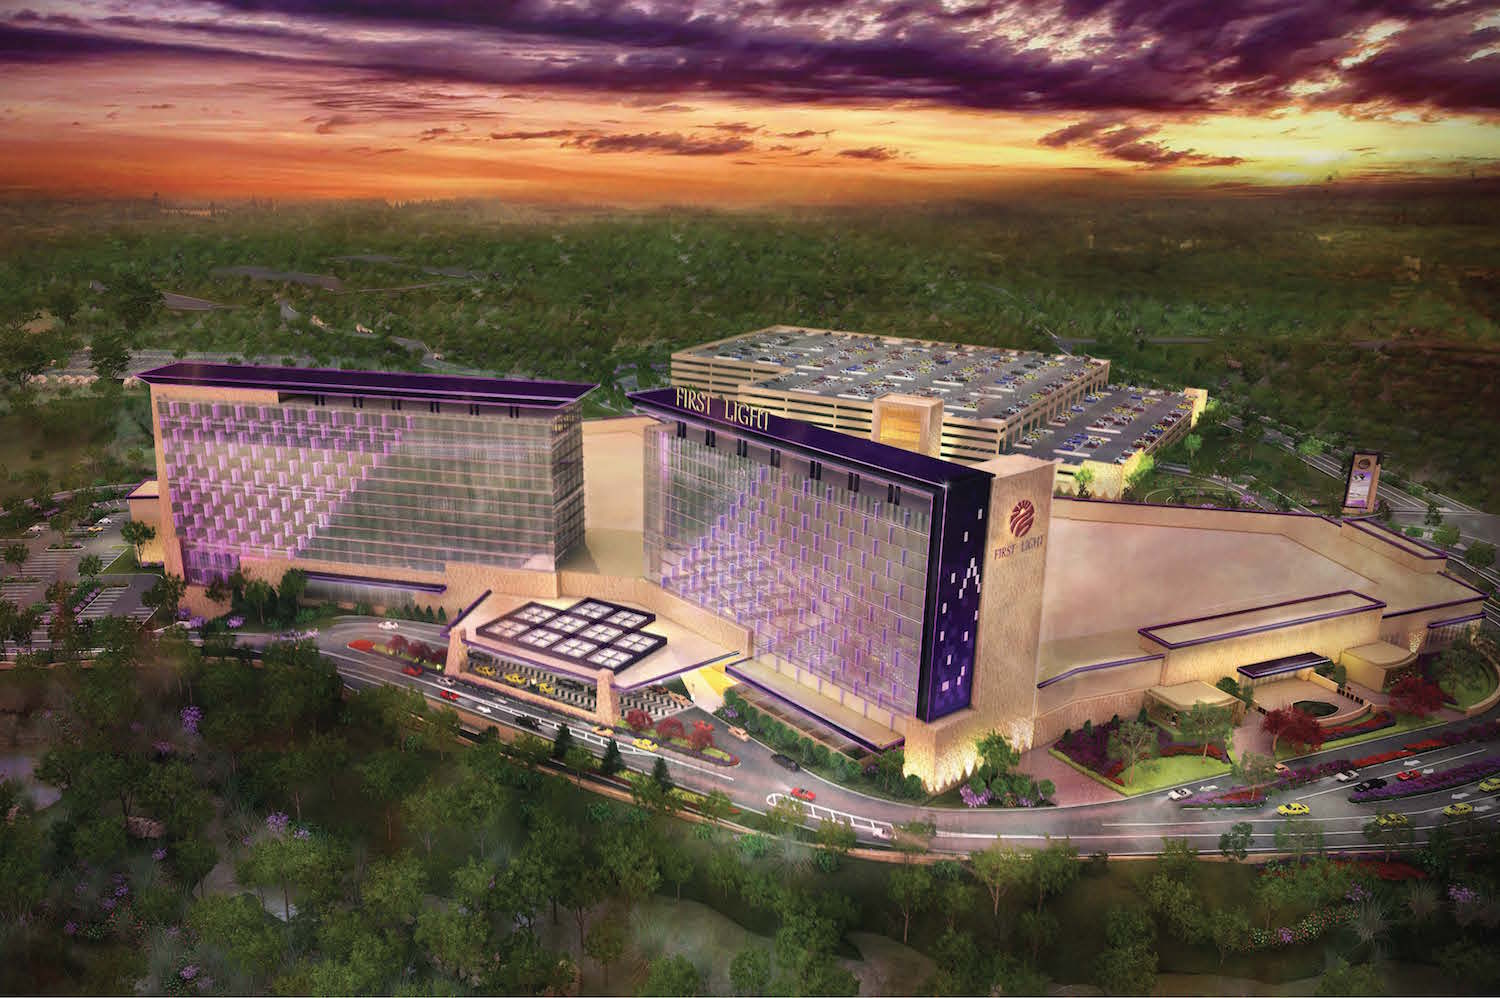 Mashpee Wampanoag Tribe continues work on casino despite court ruling